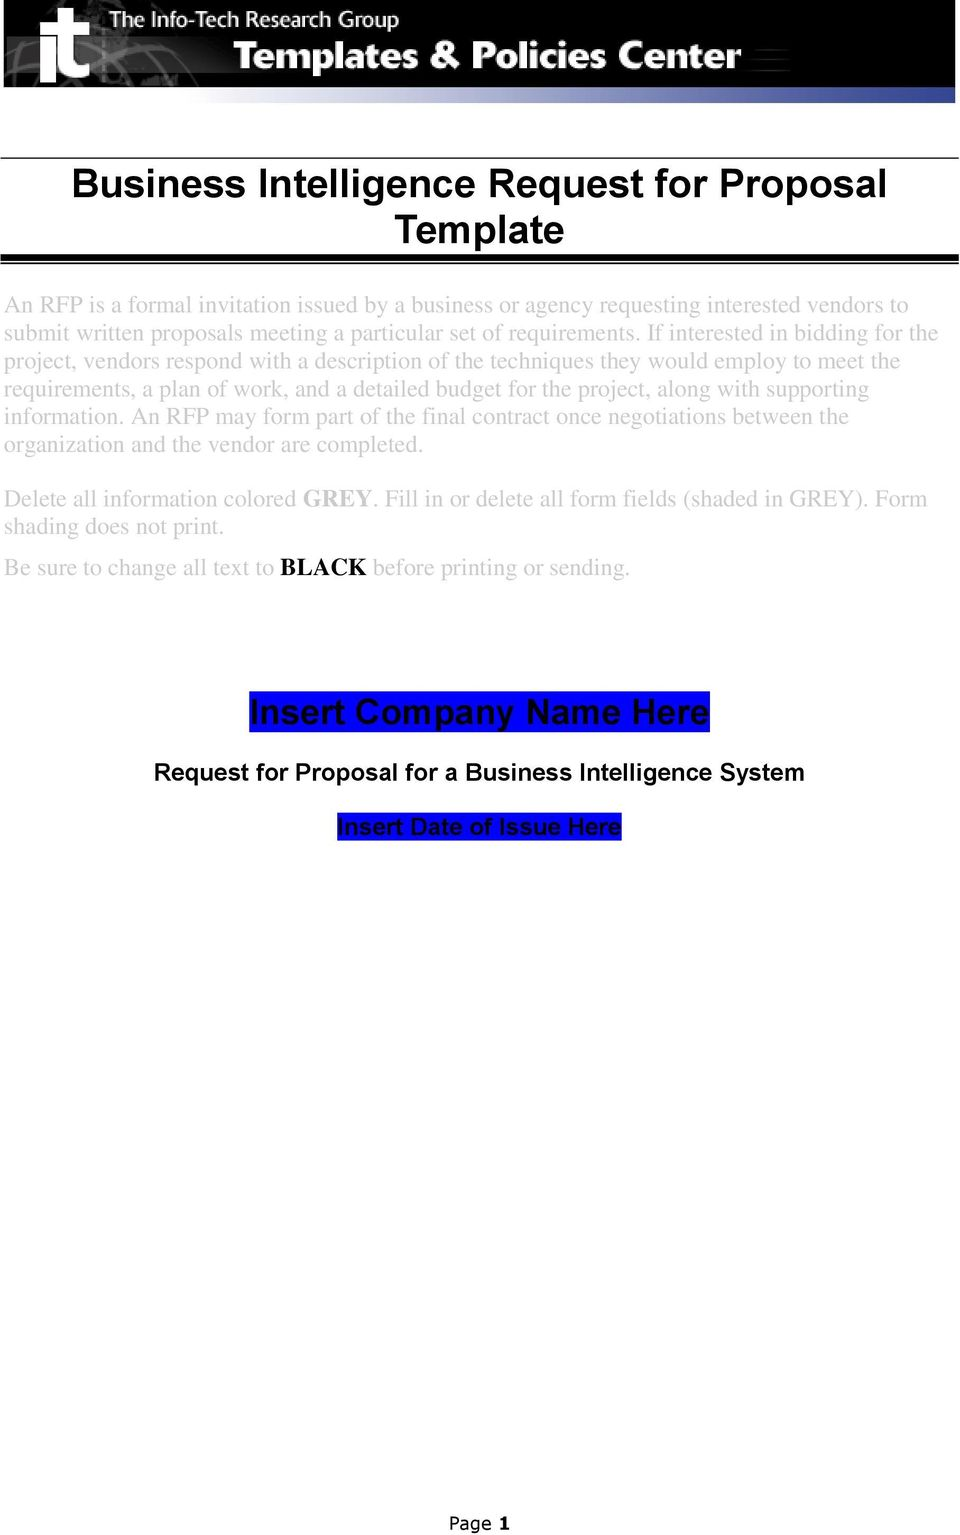 Business Intelligence Request For Proposal Template Pdf